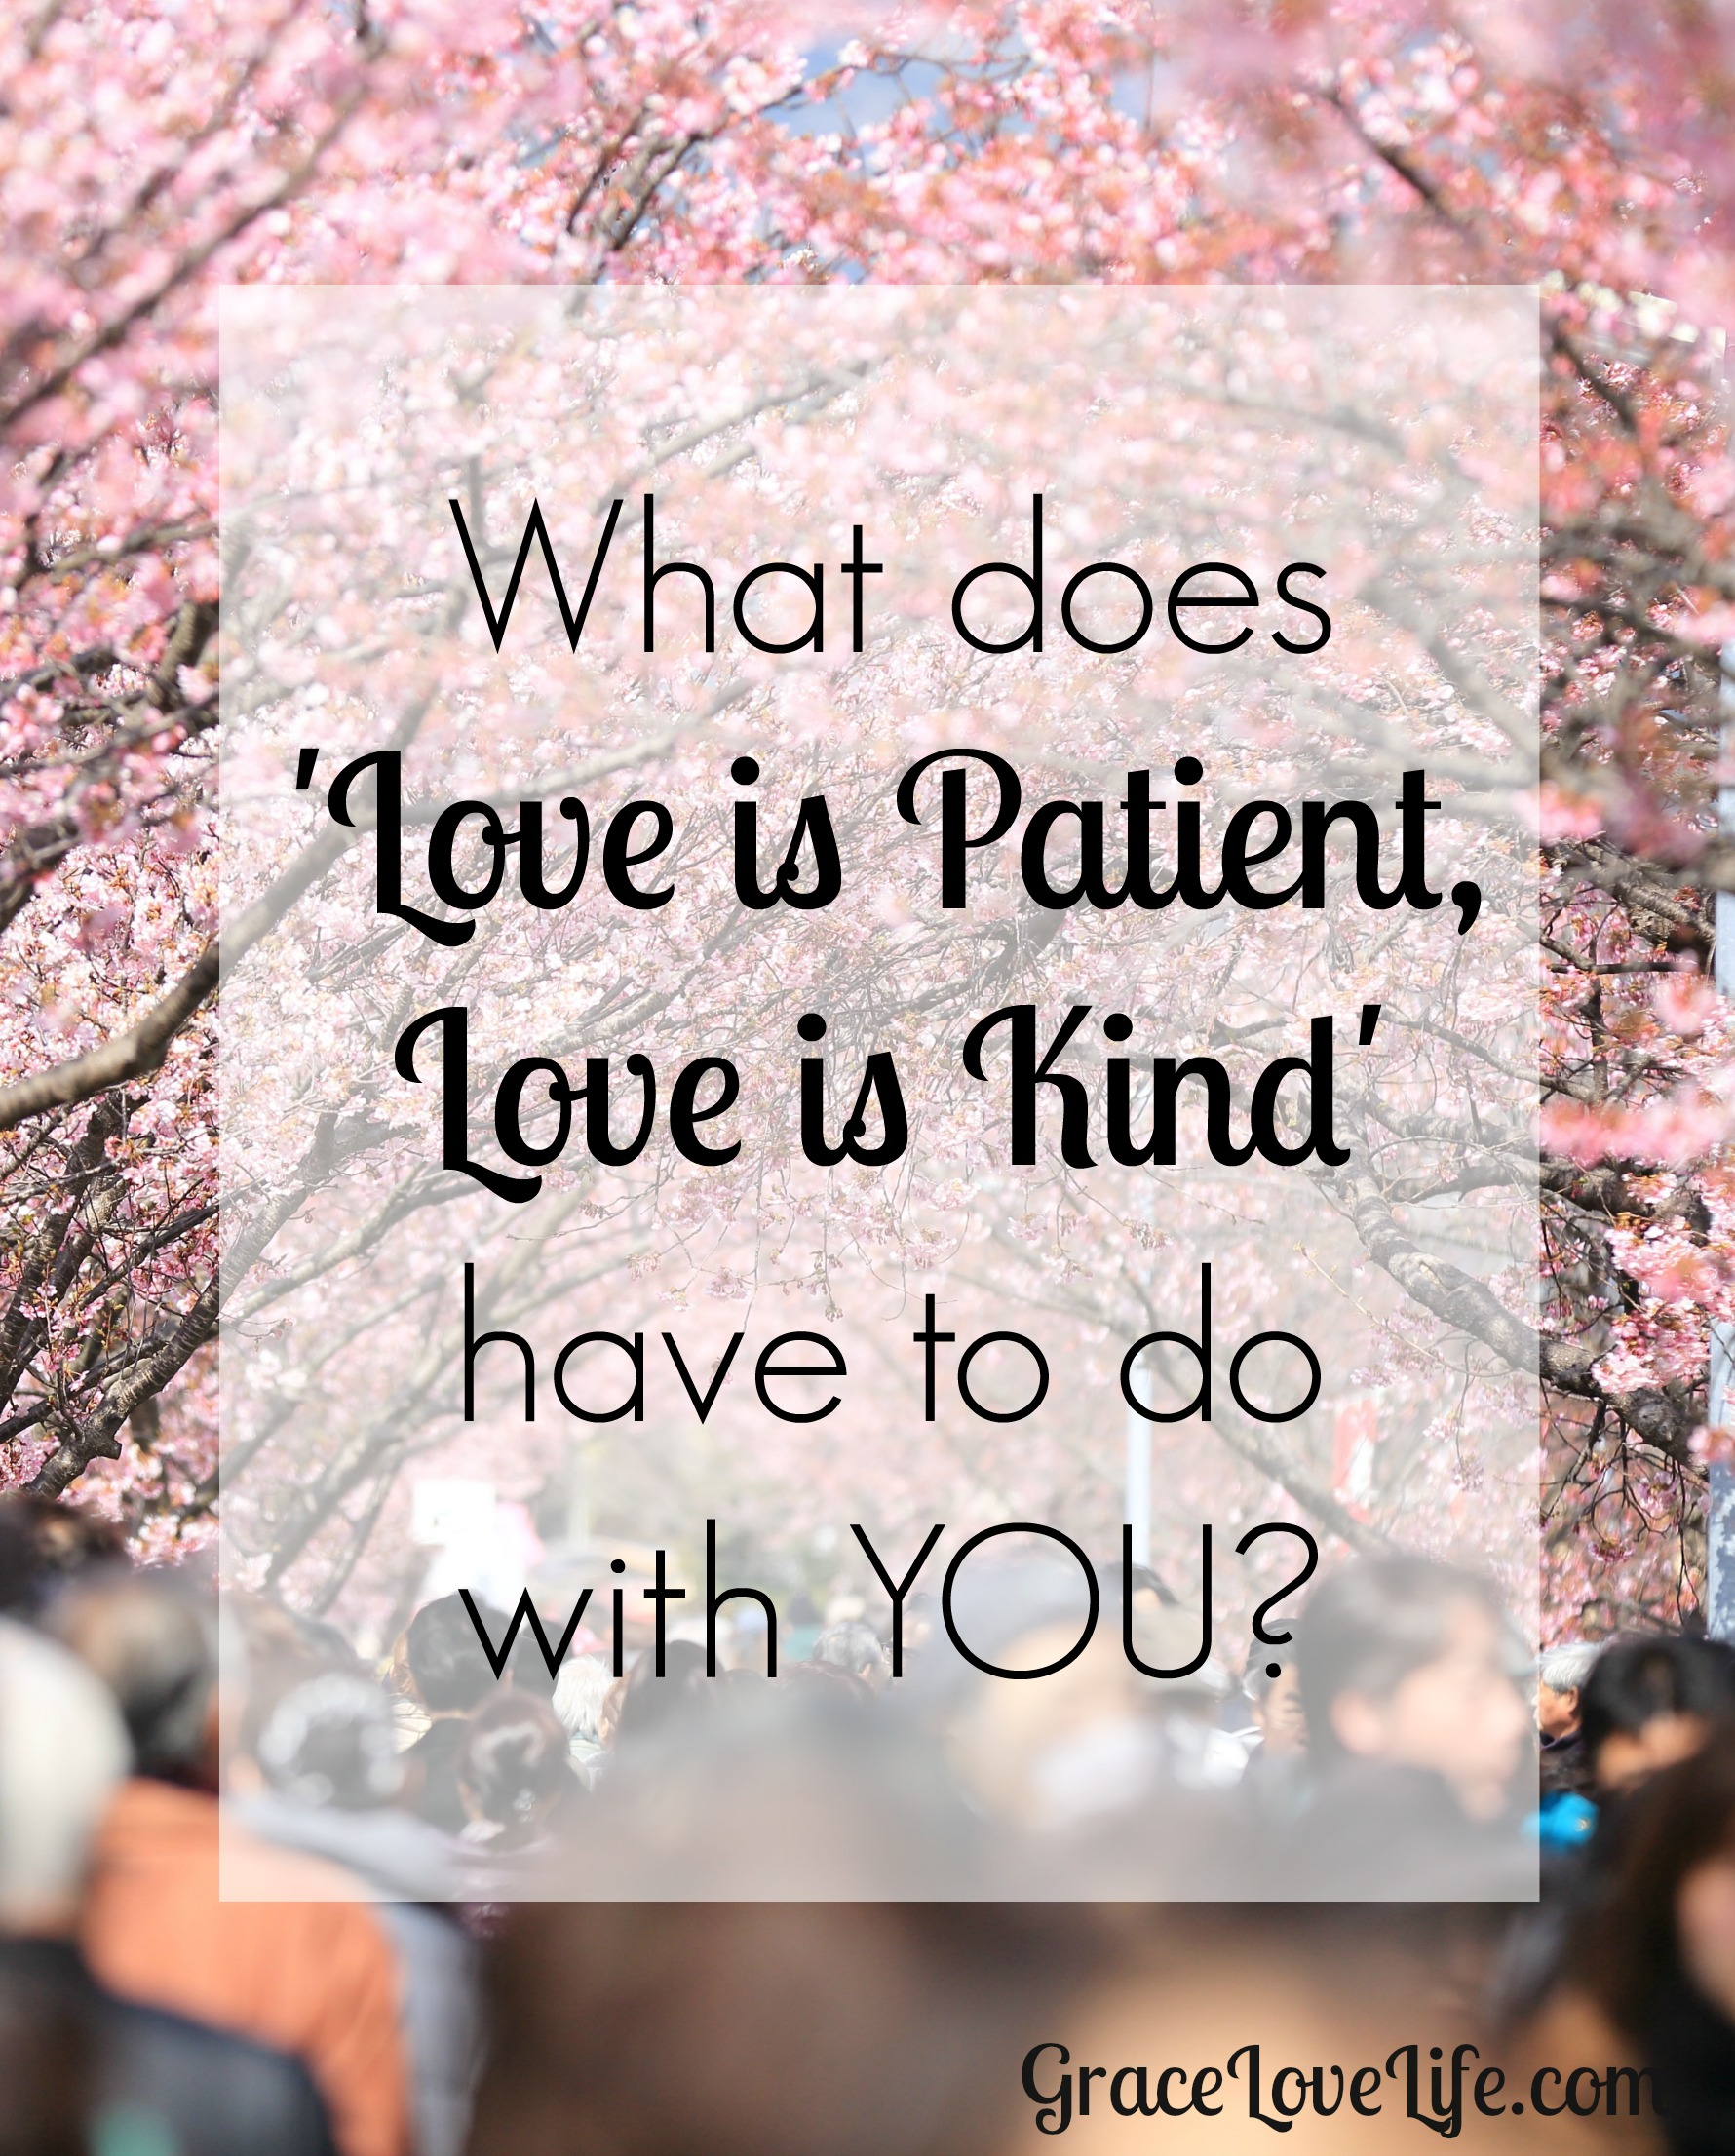 Wedding Reading Love Is Patient: What Does 'Love Is Patient, Love Is Kind' Have To Do With